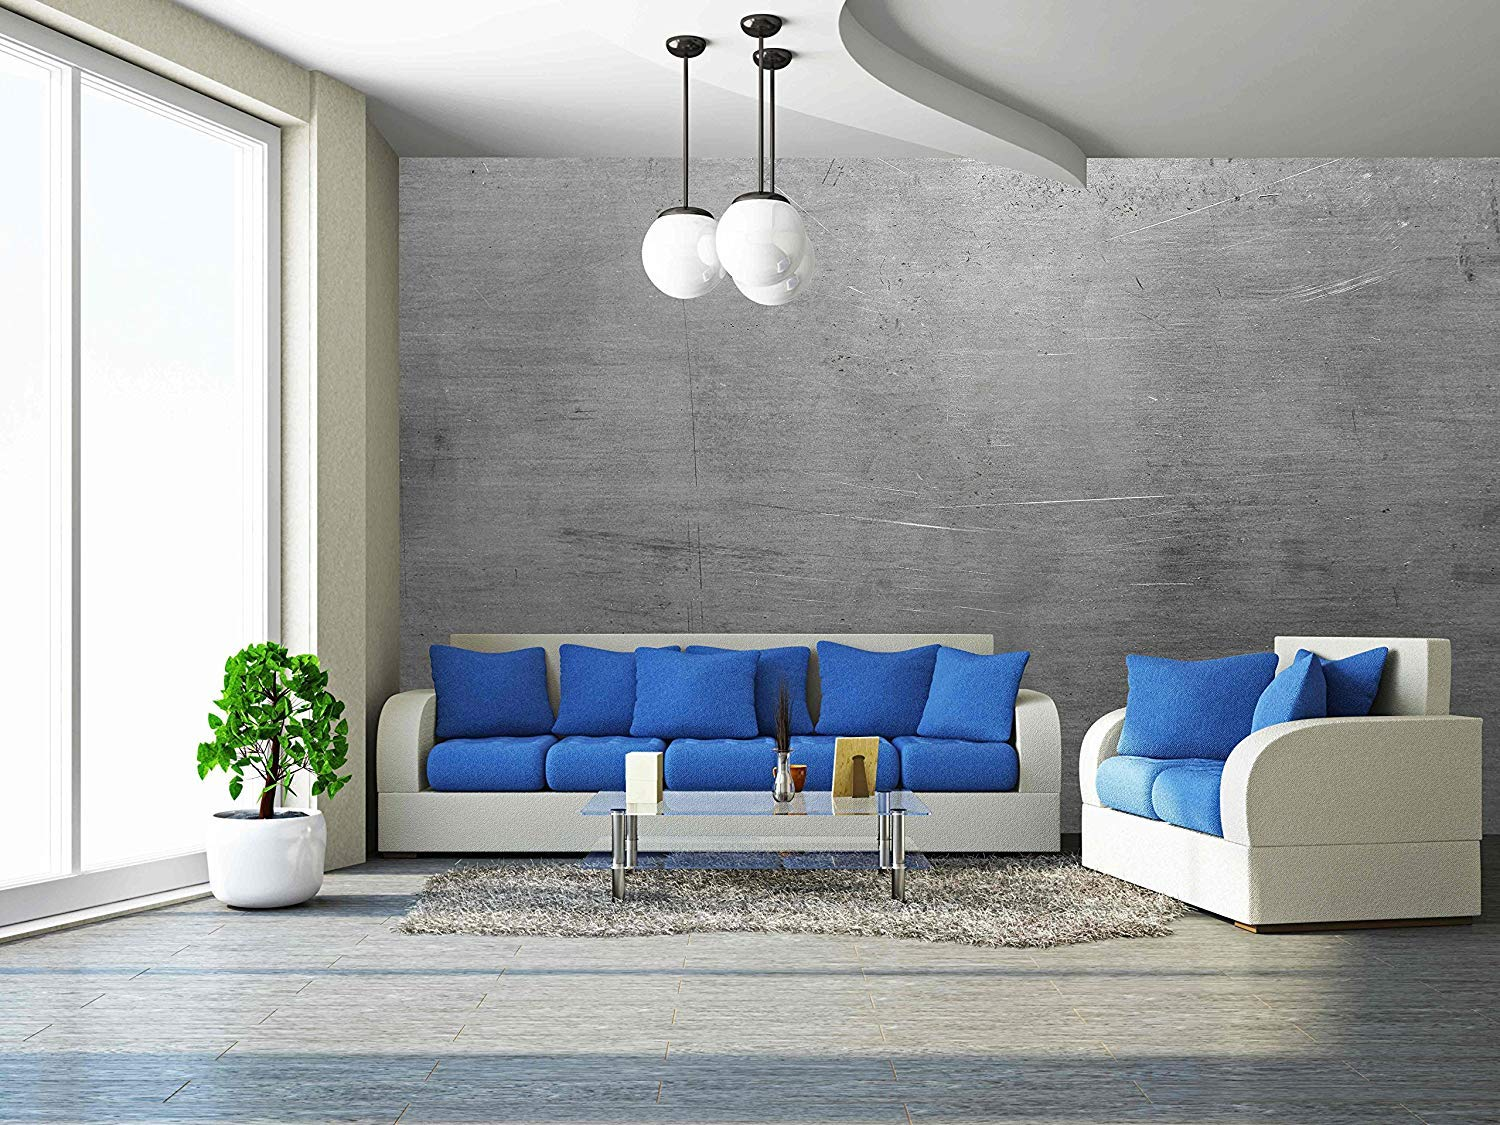 wall26 - Polished Steel - Removable Wall Mural | Self-adhesive Large Wallpaper - 100x144 inches